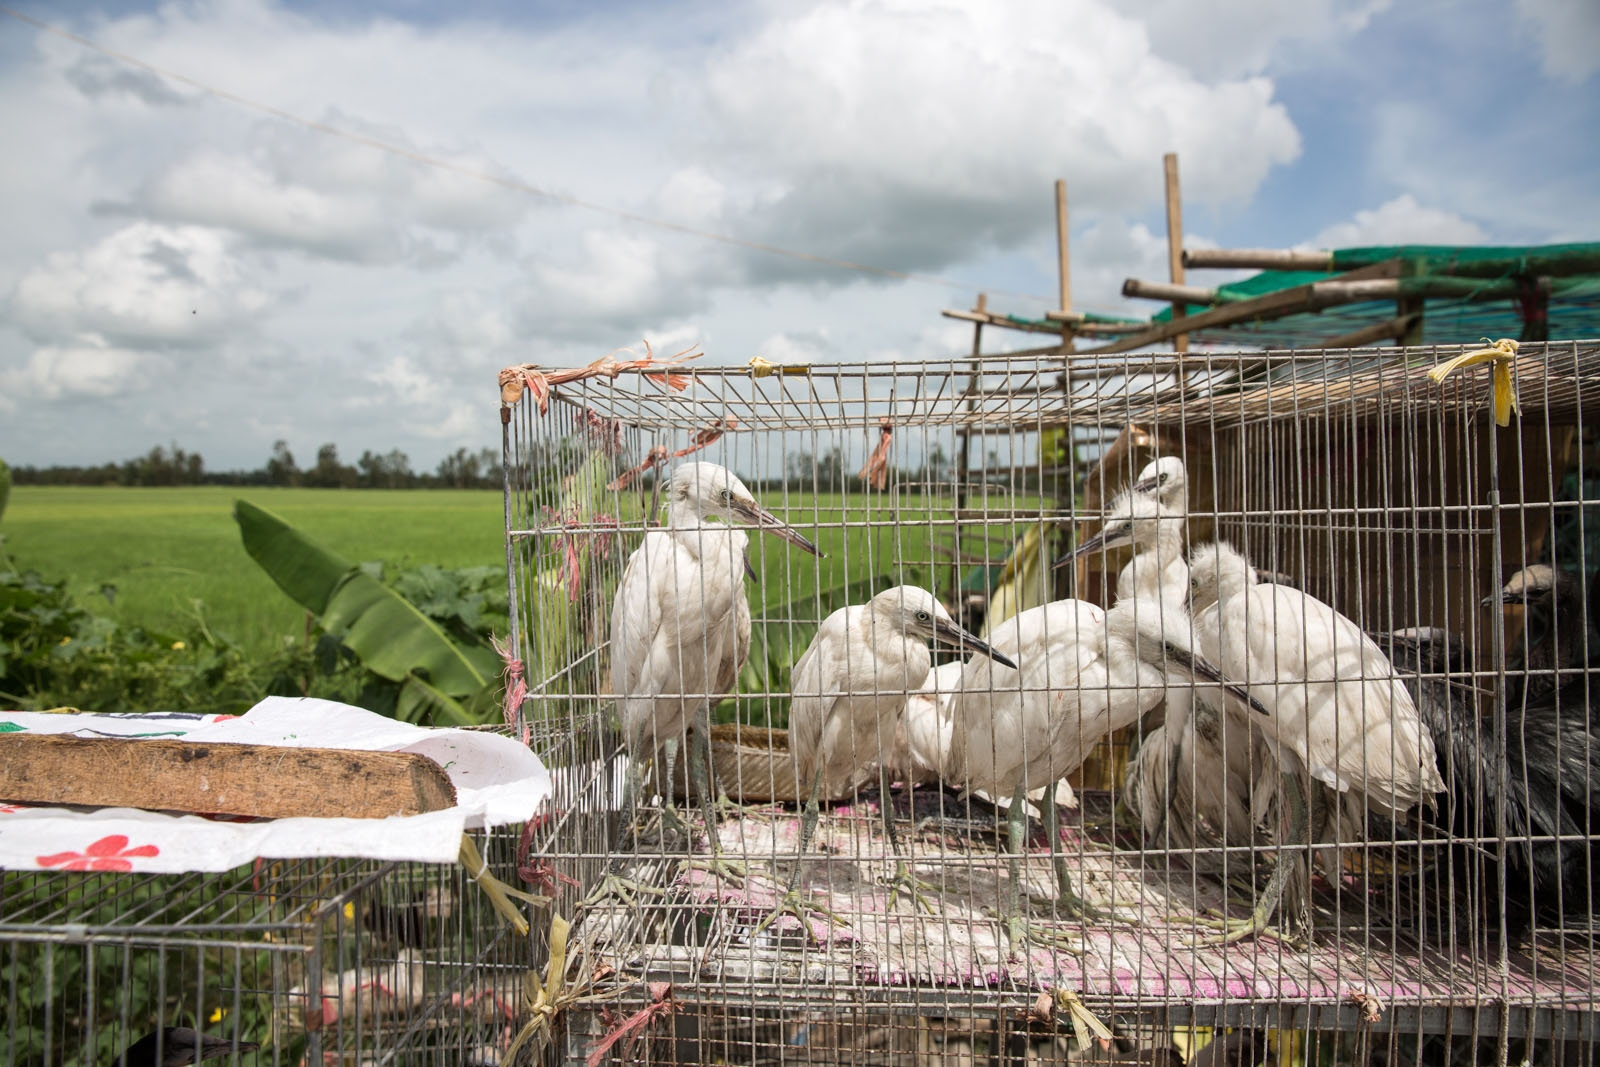 Wild egrets for sale at a roadside stall running through Ca Mau province. Such extensive farming practises in the Mekong Delta has led to a huge decline in wildlife due to habitat loss and other human activities.